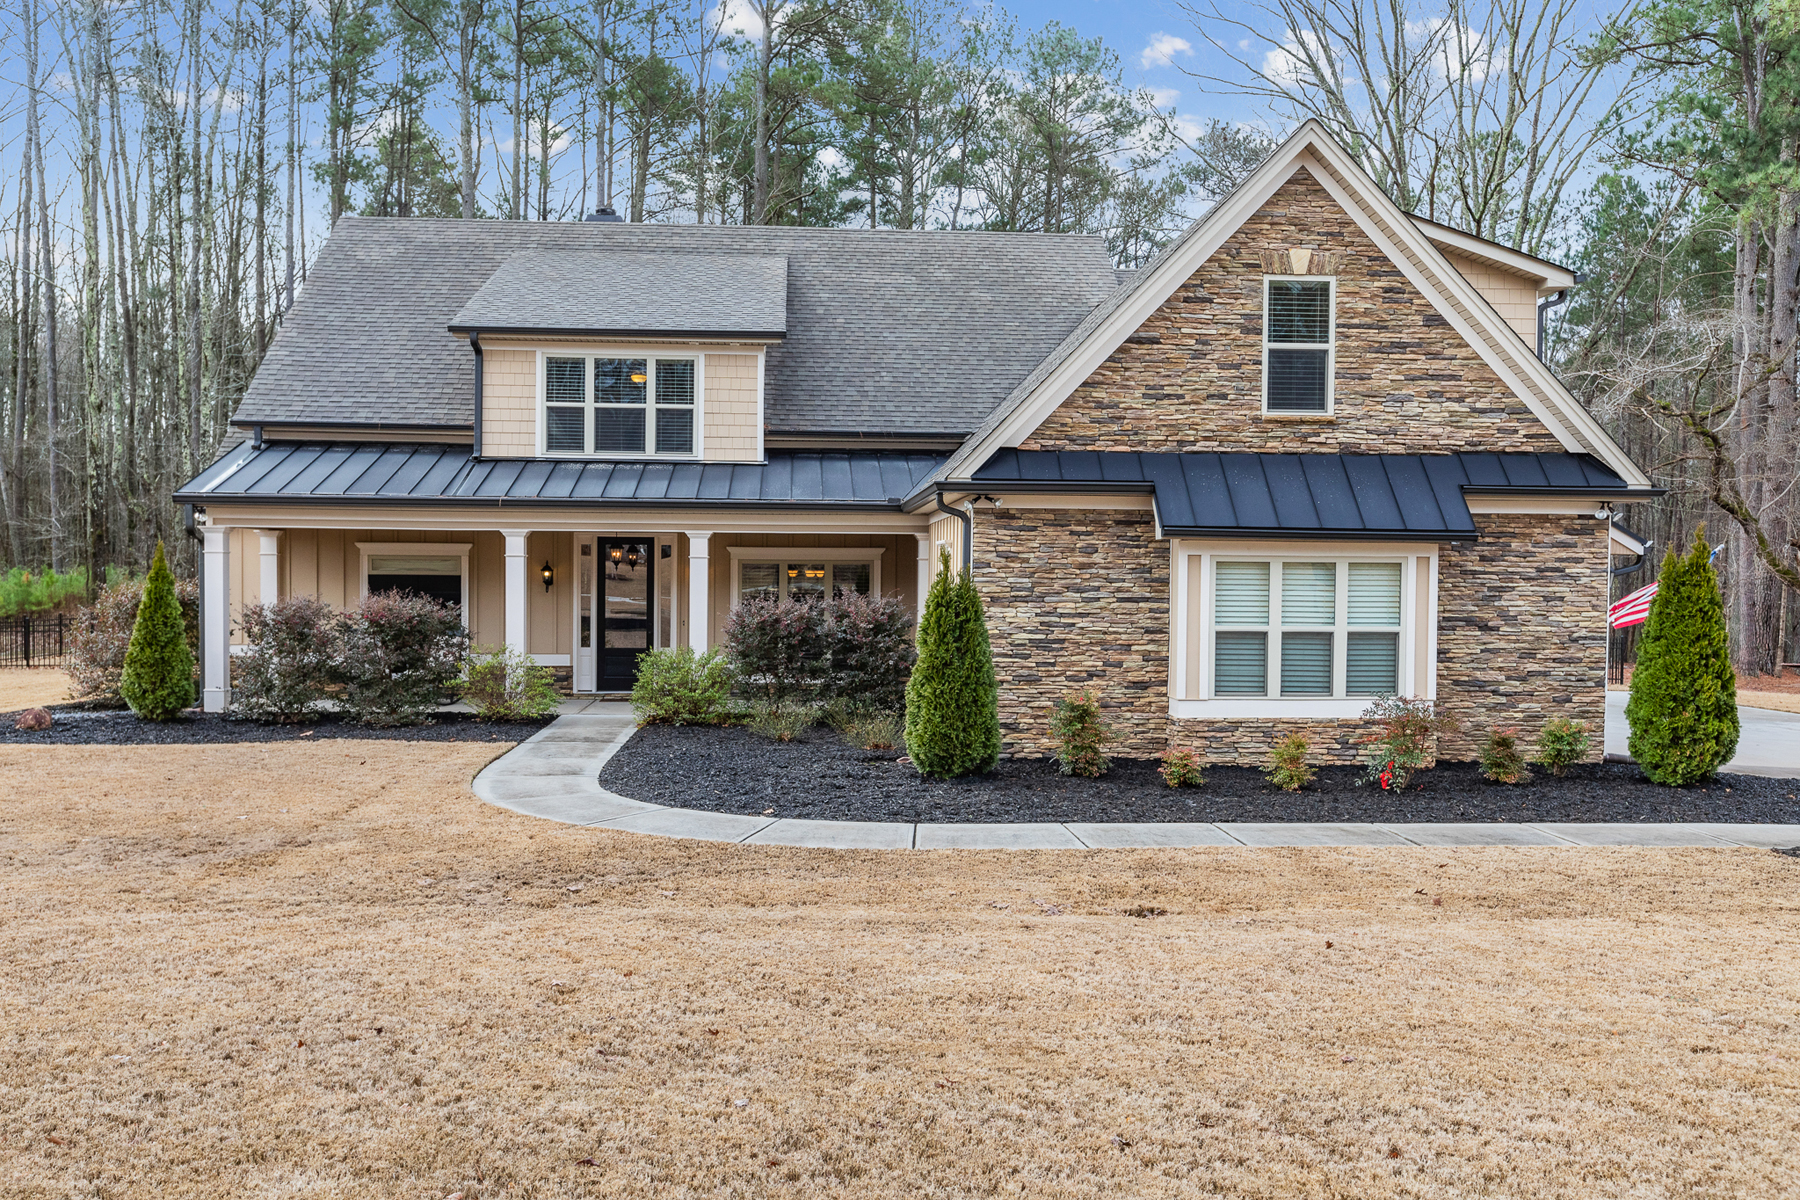 Single Family Homes for Active at Immaculate, Move-in Ready Northwynn Home with Master on Main 184 Northwynn Drive Sharpsburg, Georgia 30277 United States